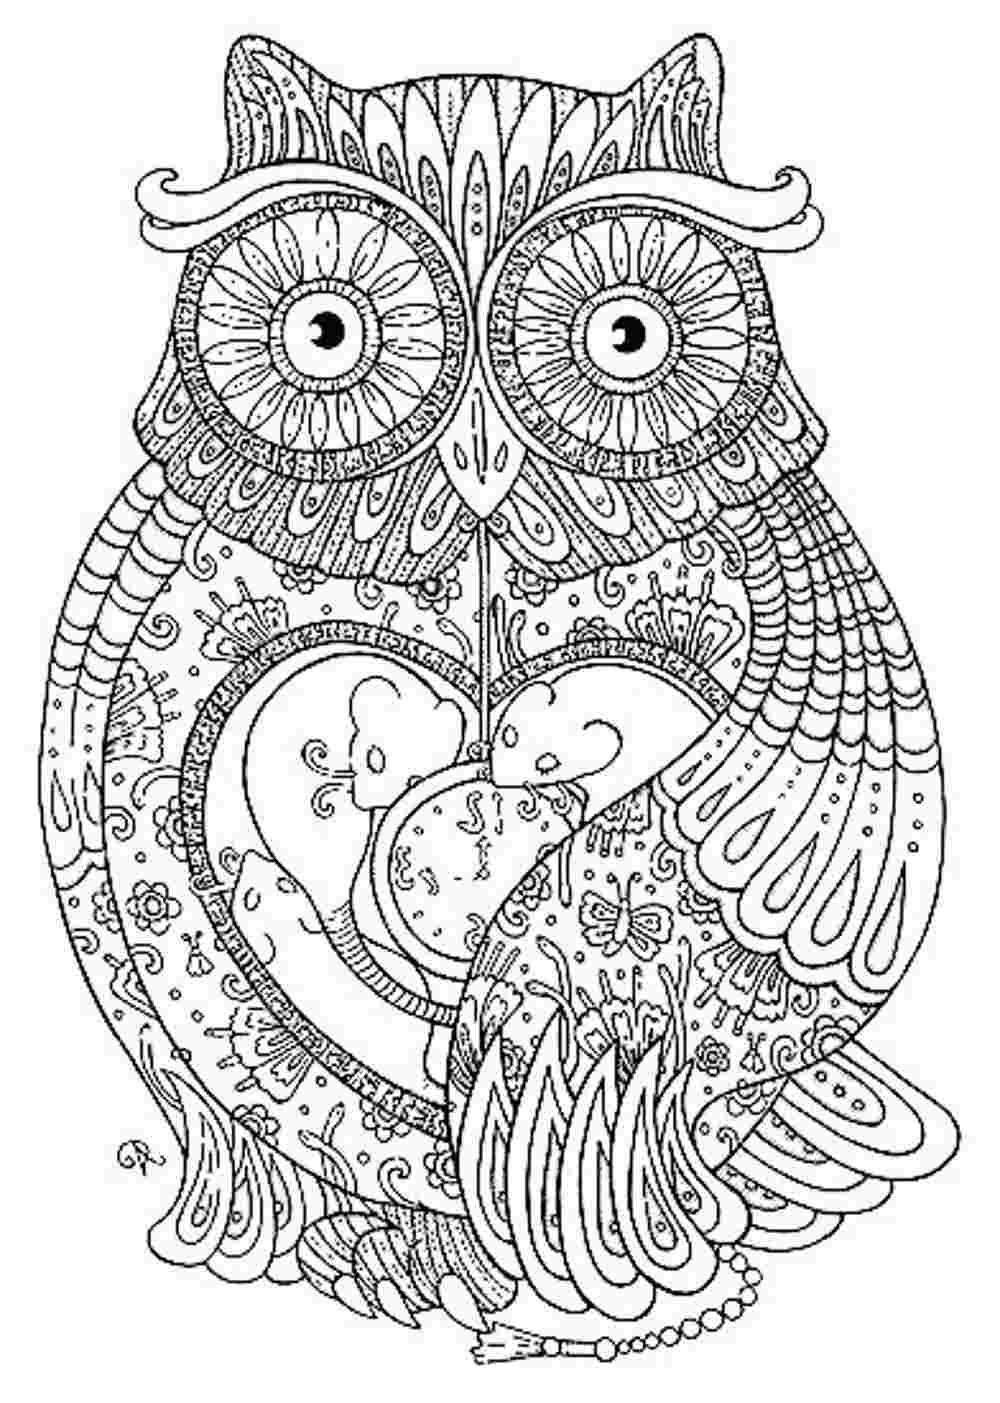 Animal mandala coloring pages to